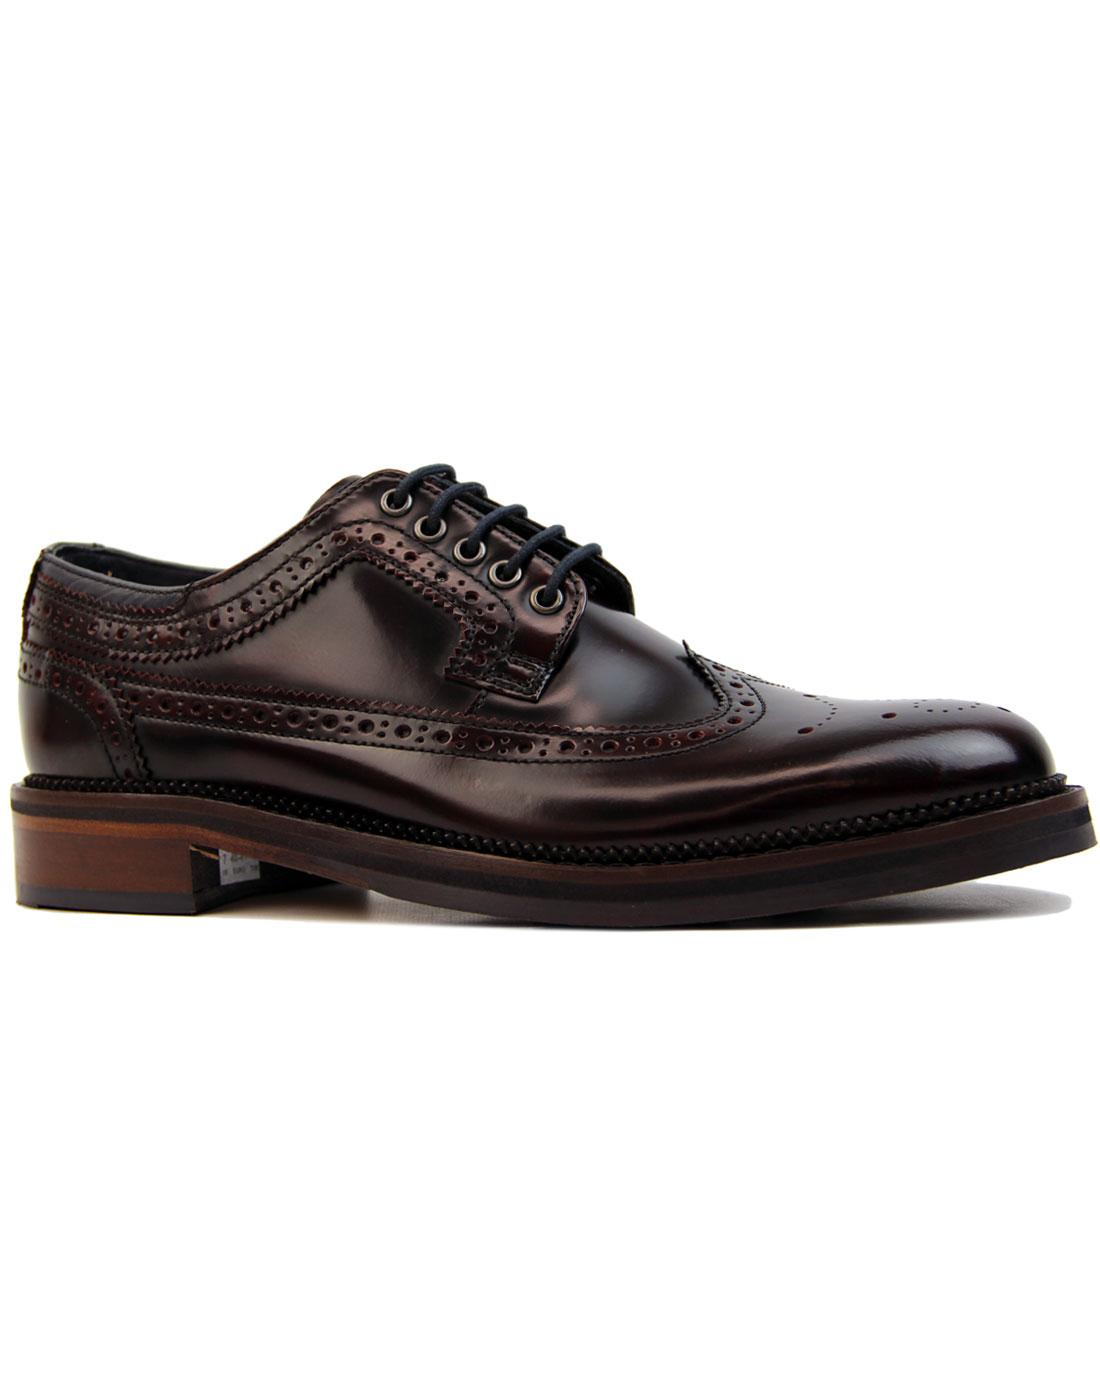 Goodwin Smith Walker Mod Rub Off Hi Shine Brogues Shoes